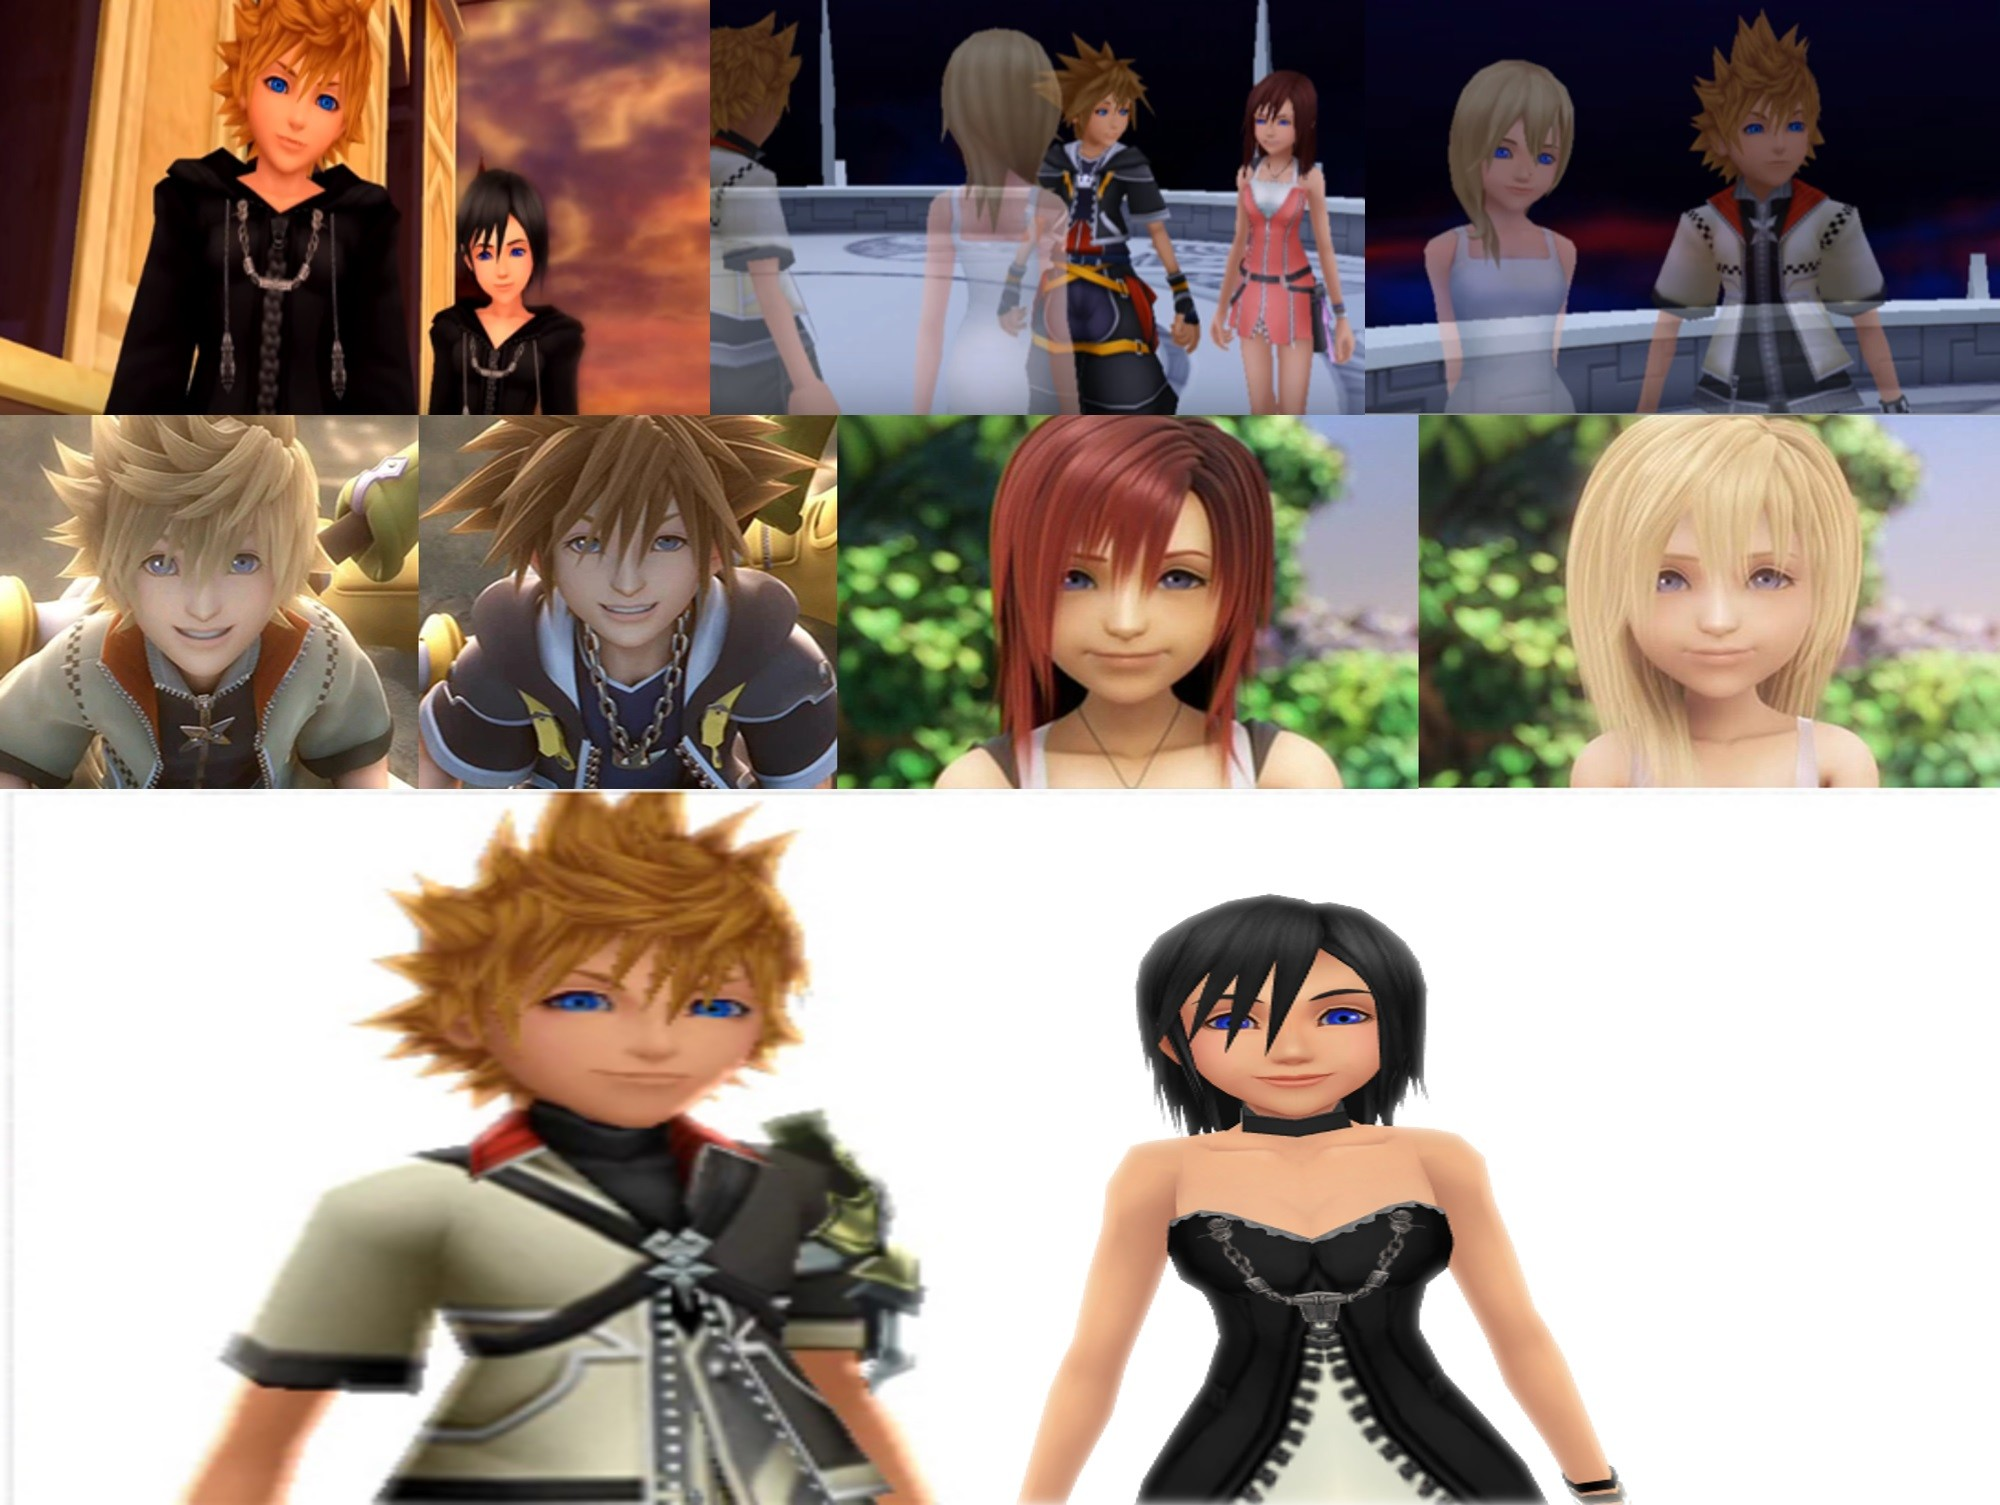 Res: 2000x1505, Kingdom Hearts trios images -----------------Sora-and-Kairi-Roxas-and-Namine-Ventus-and-Xion-..jpg  HD wallpaper and background photos